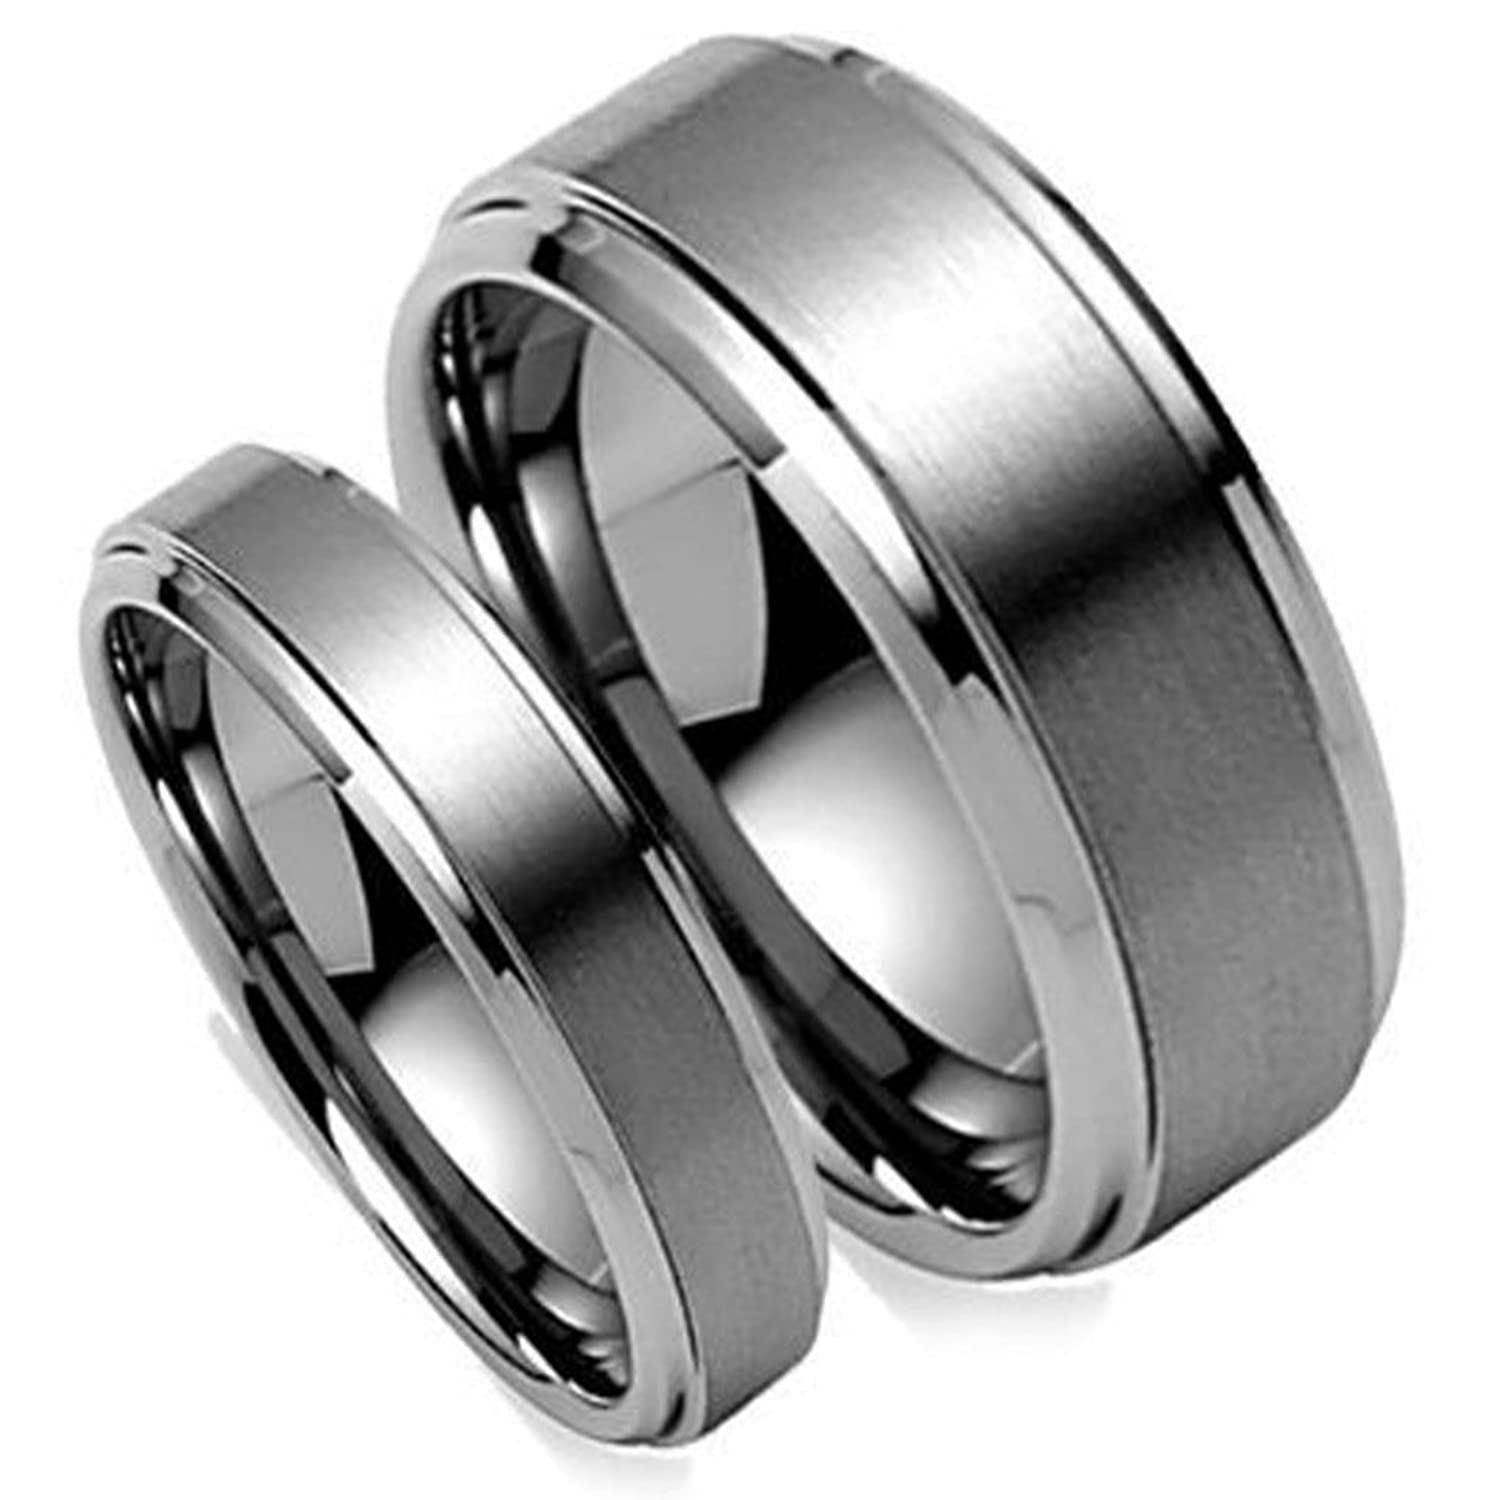 Amazon His Hers 8MM 6MM Brush Center Step Edge Tungsten Carbide Wedding Band Ring Set Jewelry